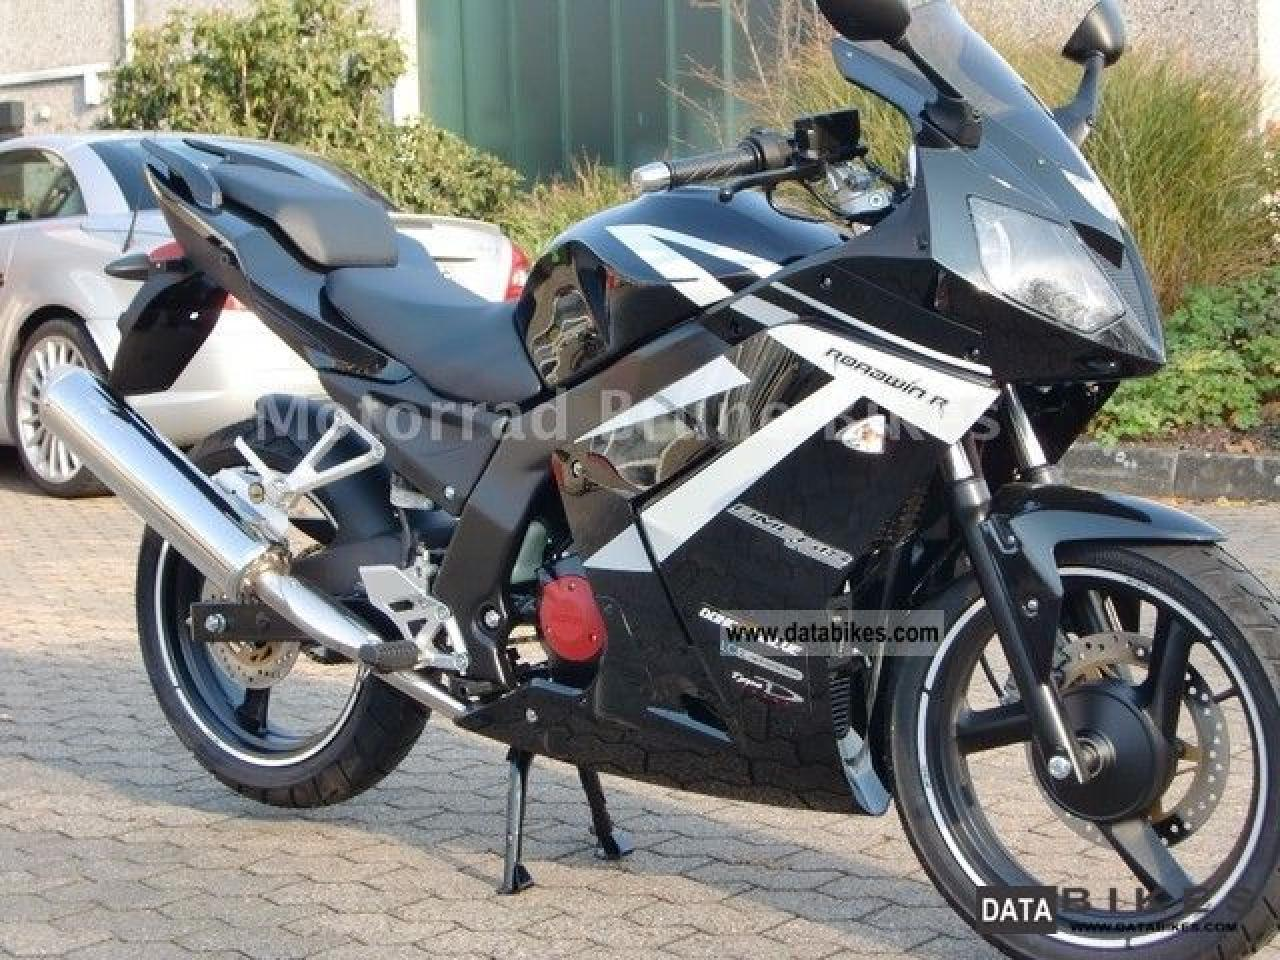 2008 daelim roadwin r 125 fi moto zombdrive com. Black Bedroom Furniture Sets. Home Design Ideas